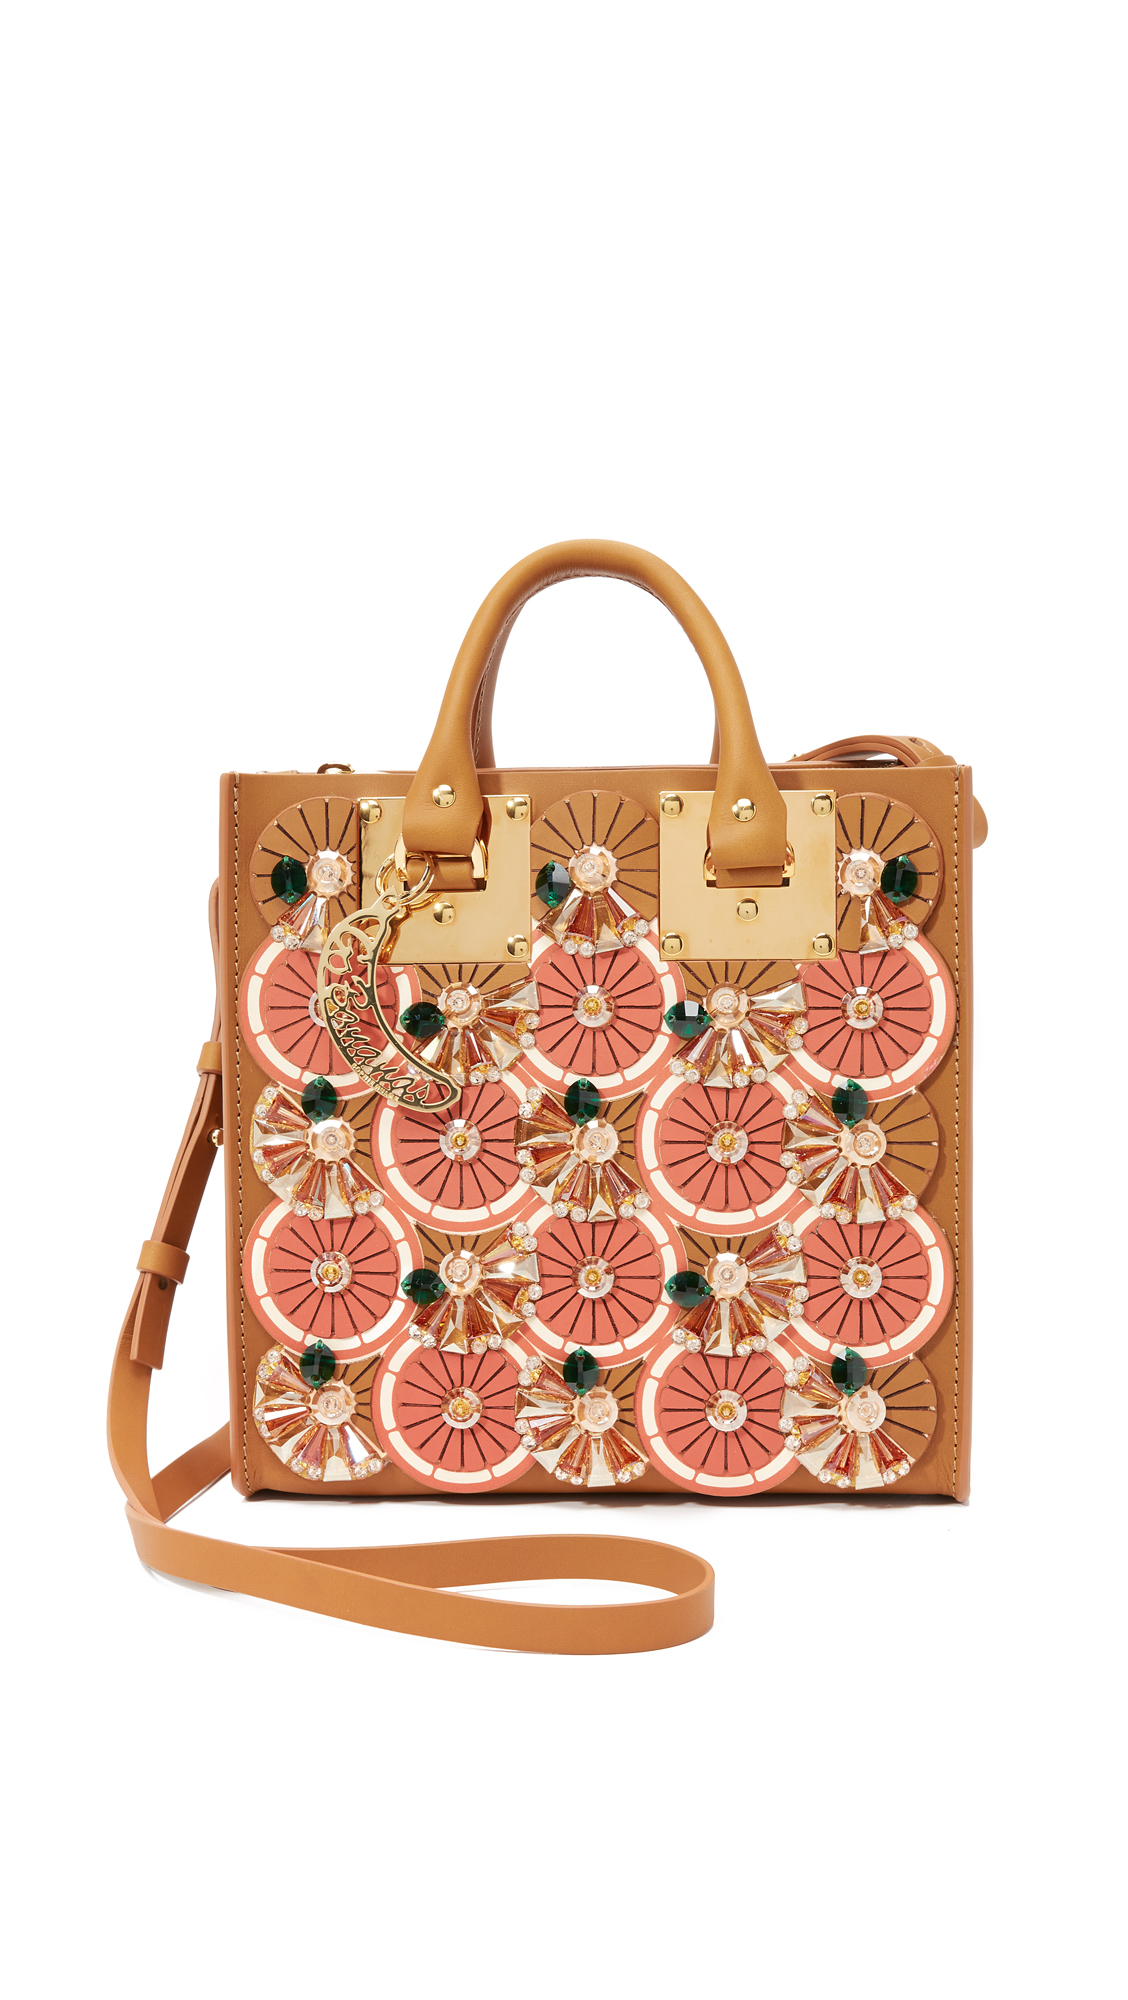 Embellished Square Tote